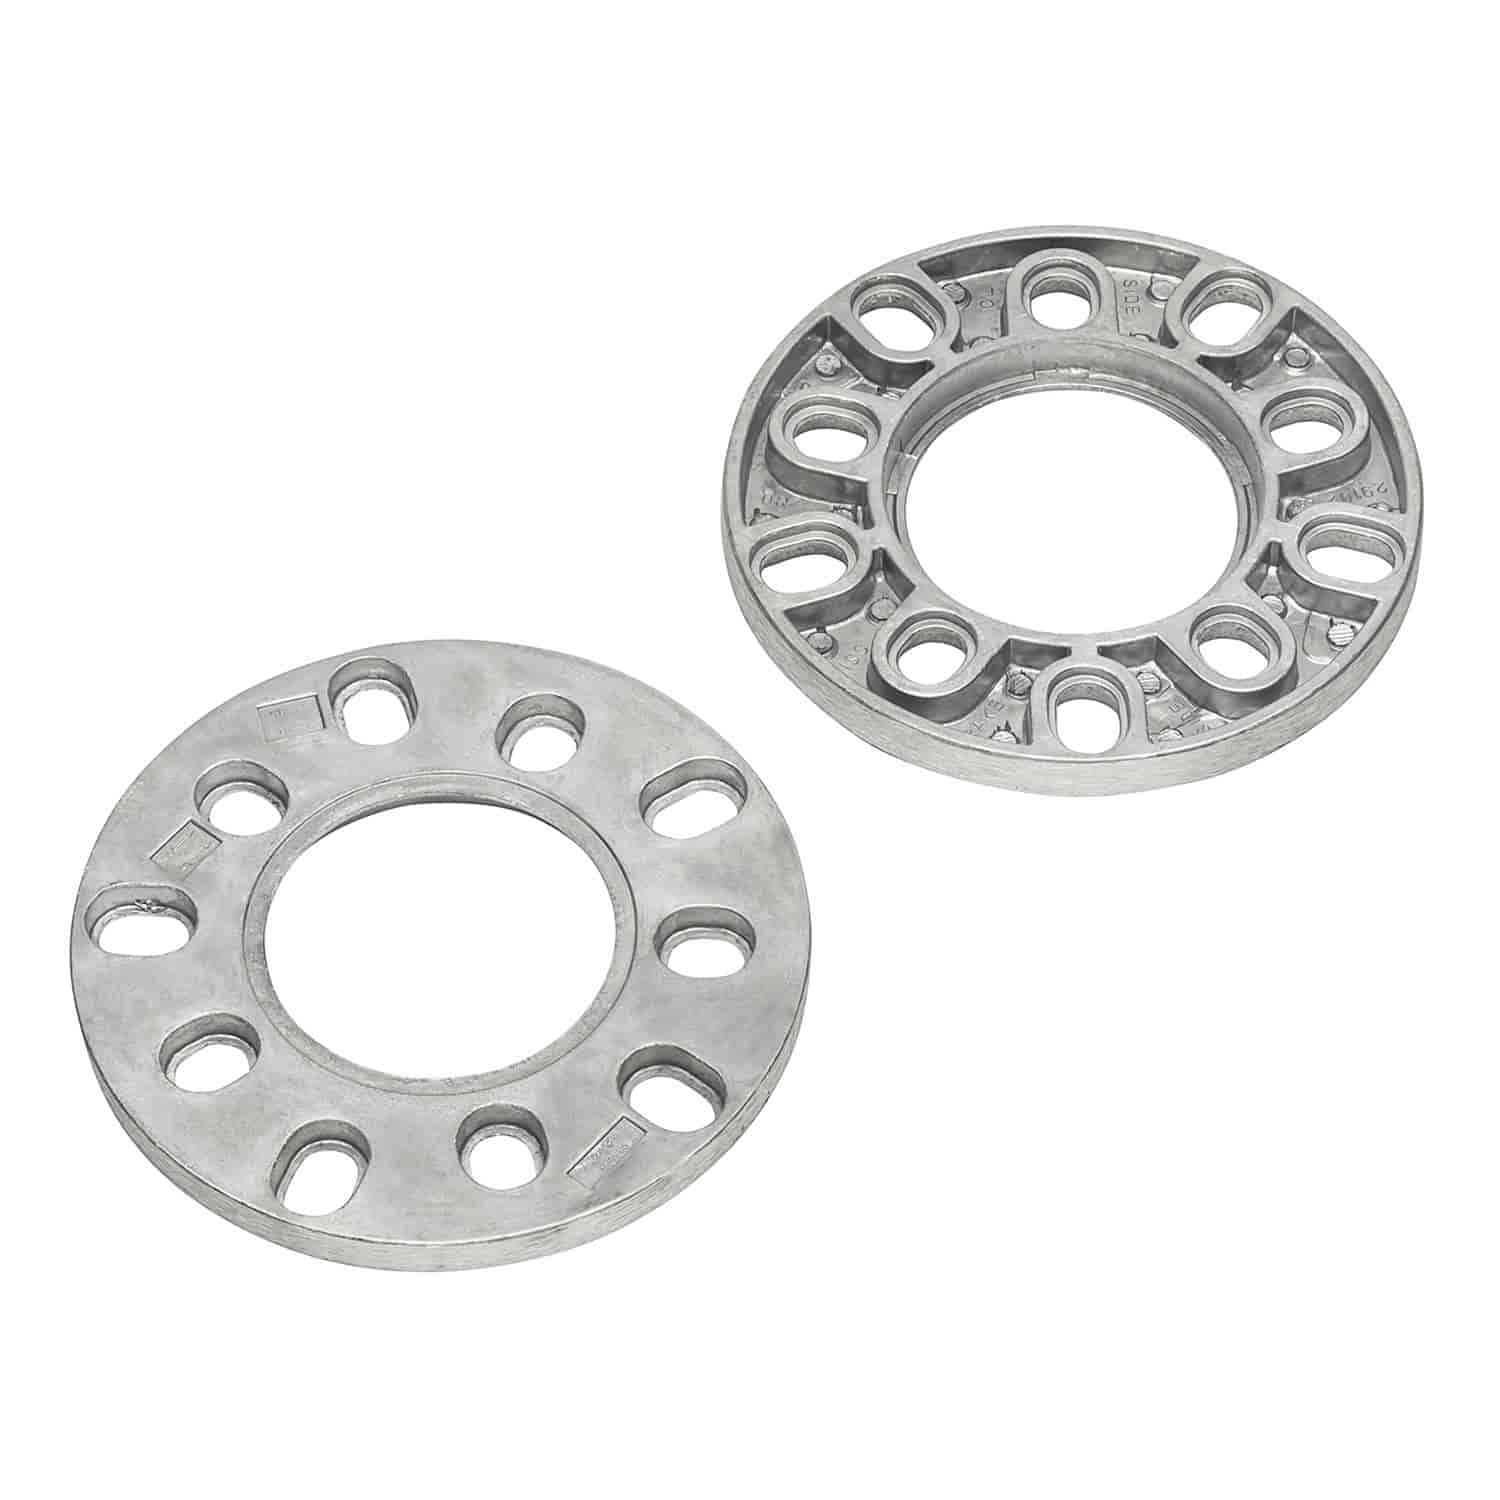 Cragar 29102 - Cragar Wheel Spacers